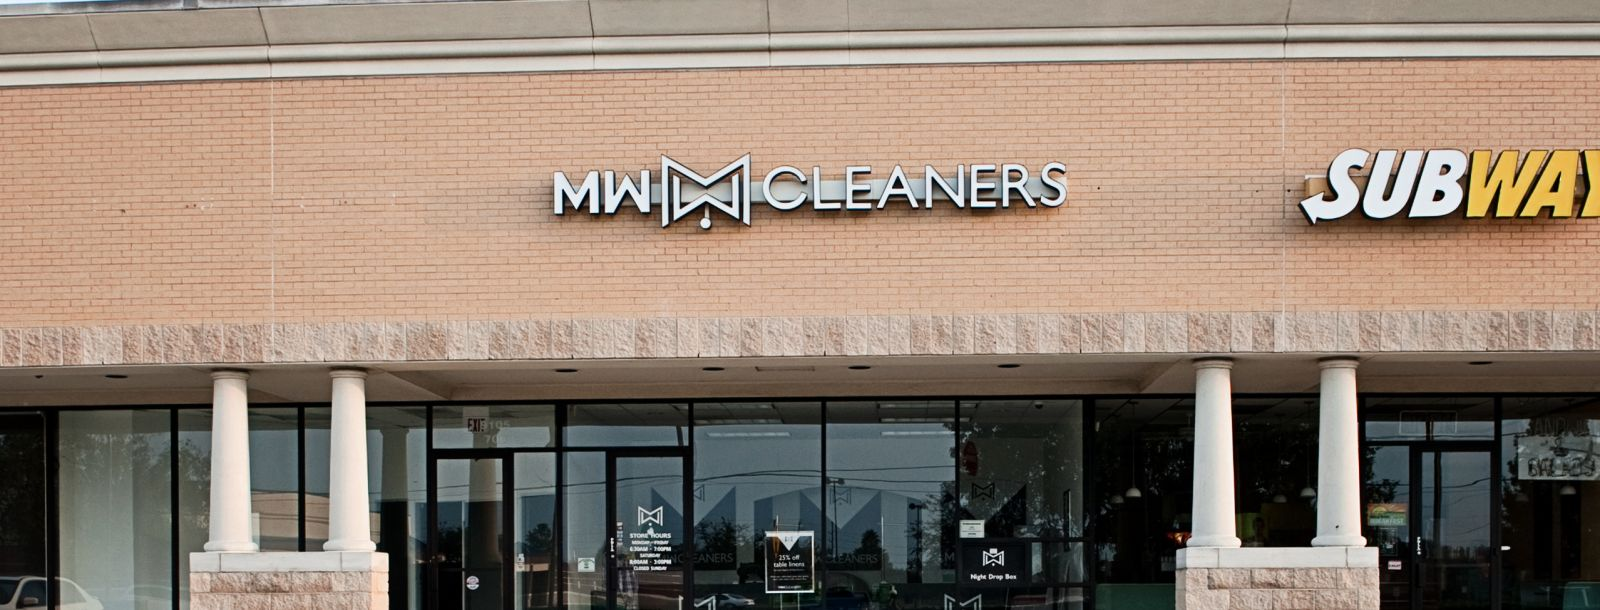 Dry cleaners jersey village laundry services mw cleaners for Same day t shirt printing austin